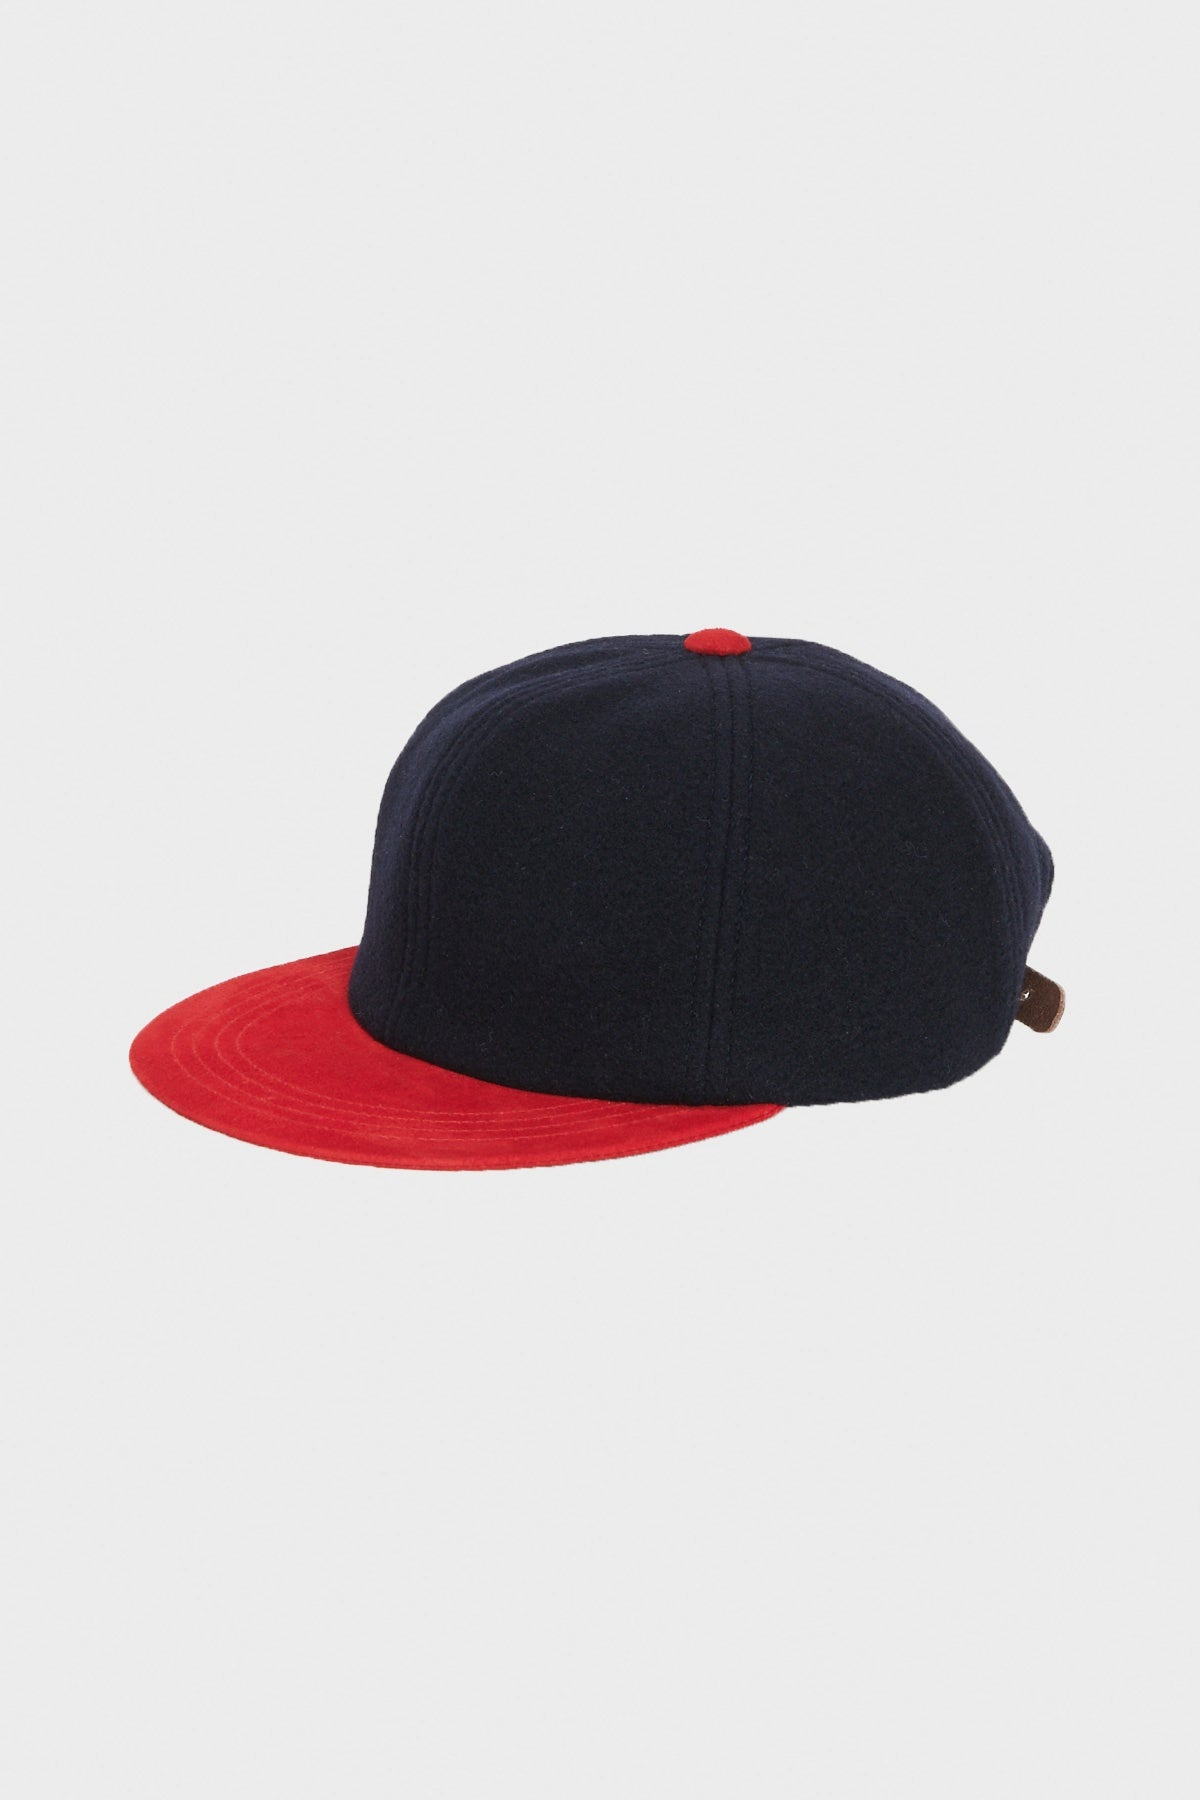 hender scheme 2 Tone Wool Cap - Navy/Red